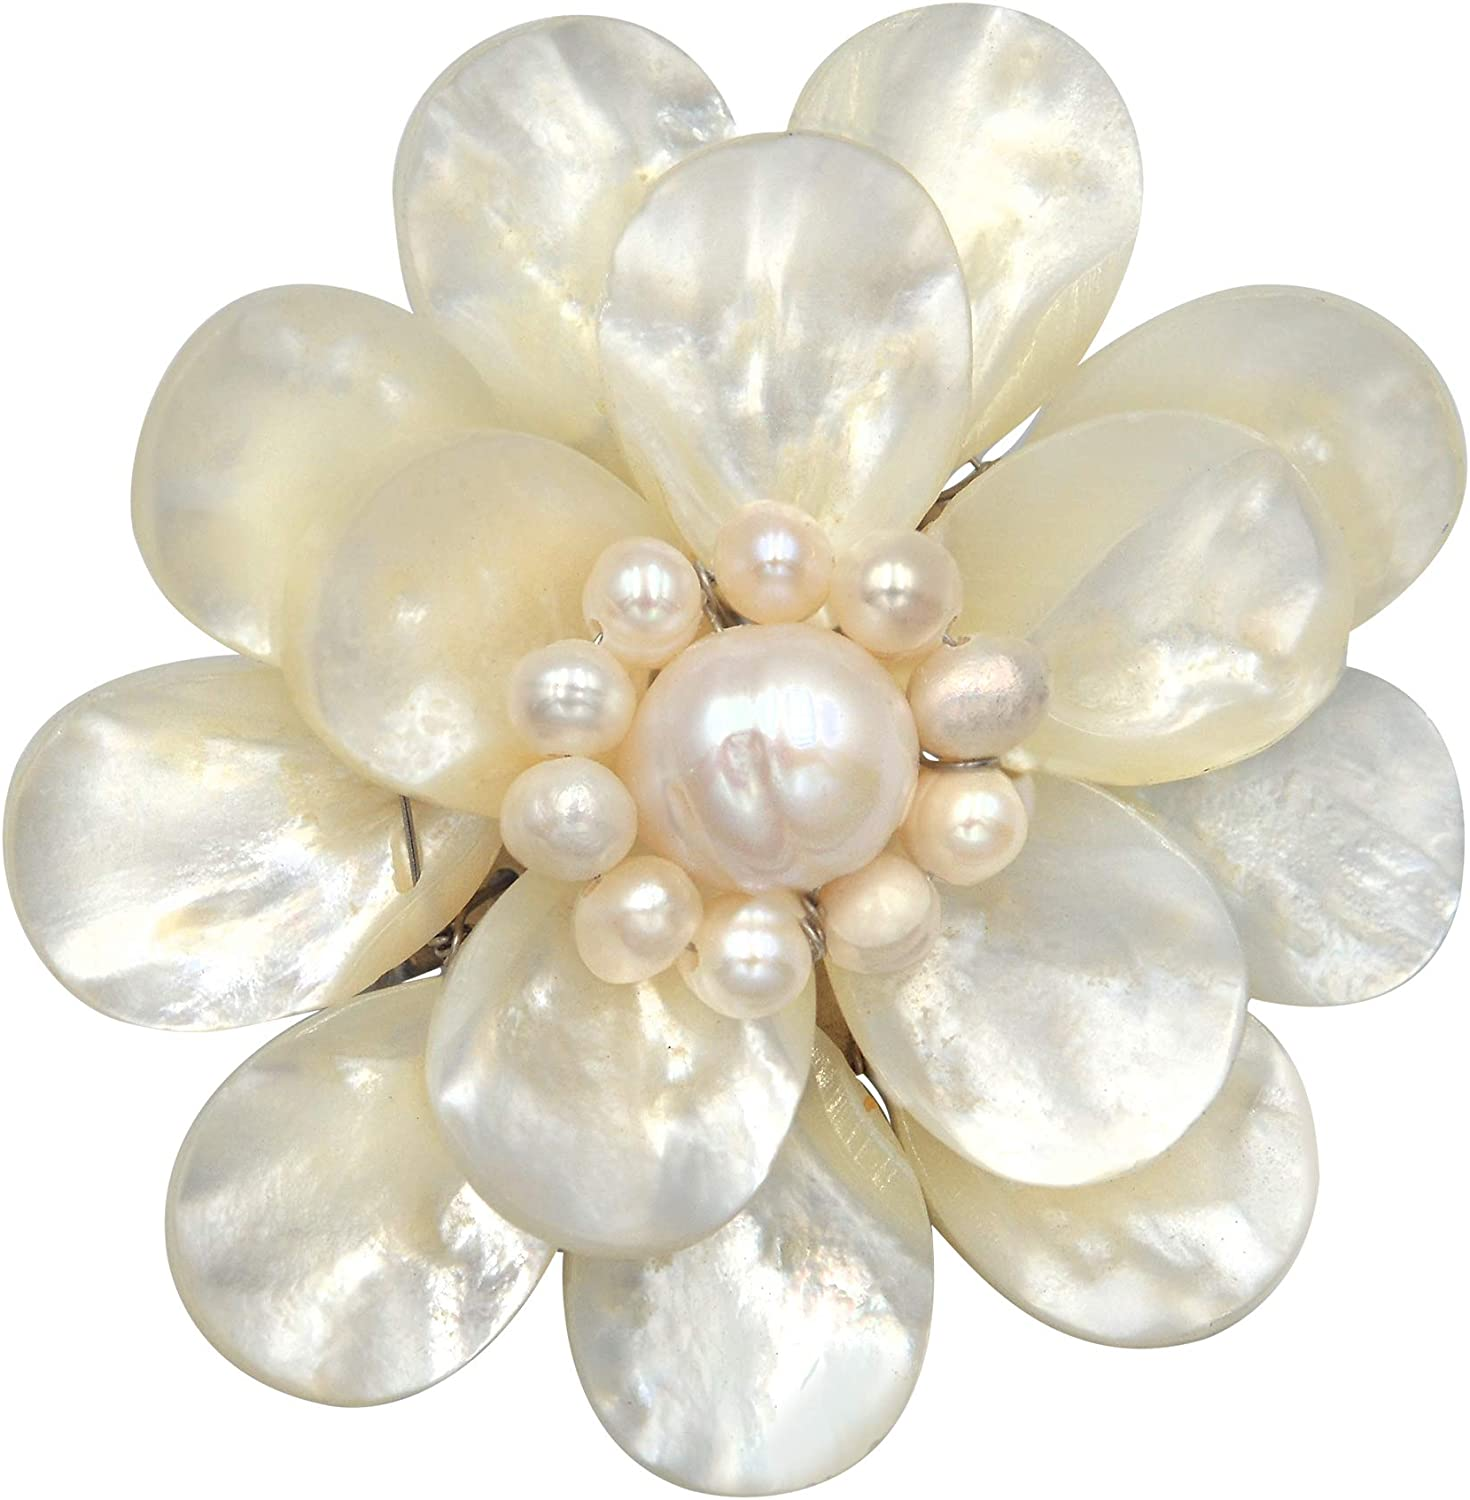 Pure Lotus White Mother of Pearl & Cultured Freshwater White Pearl Floral Pin or Brooch